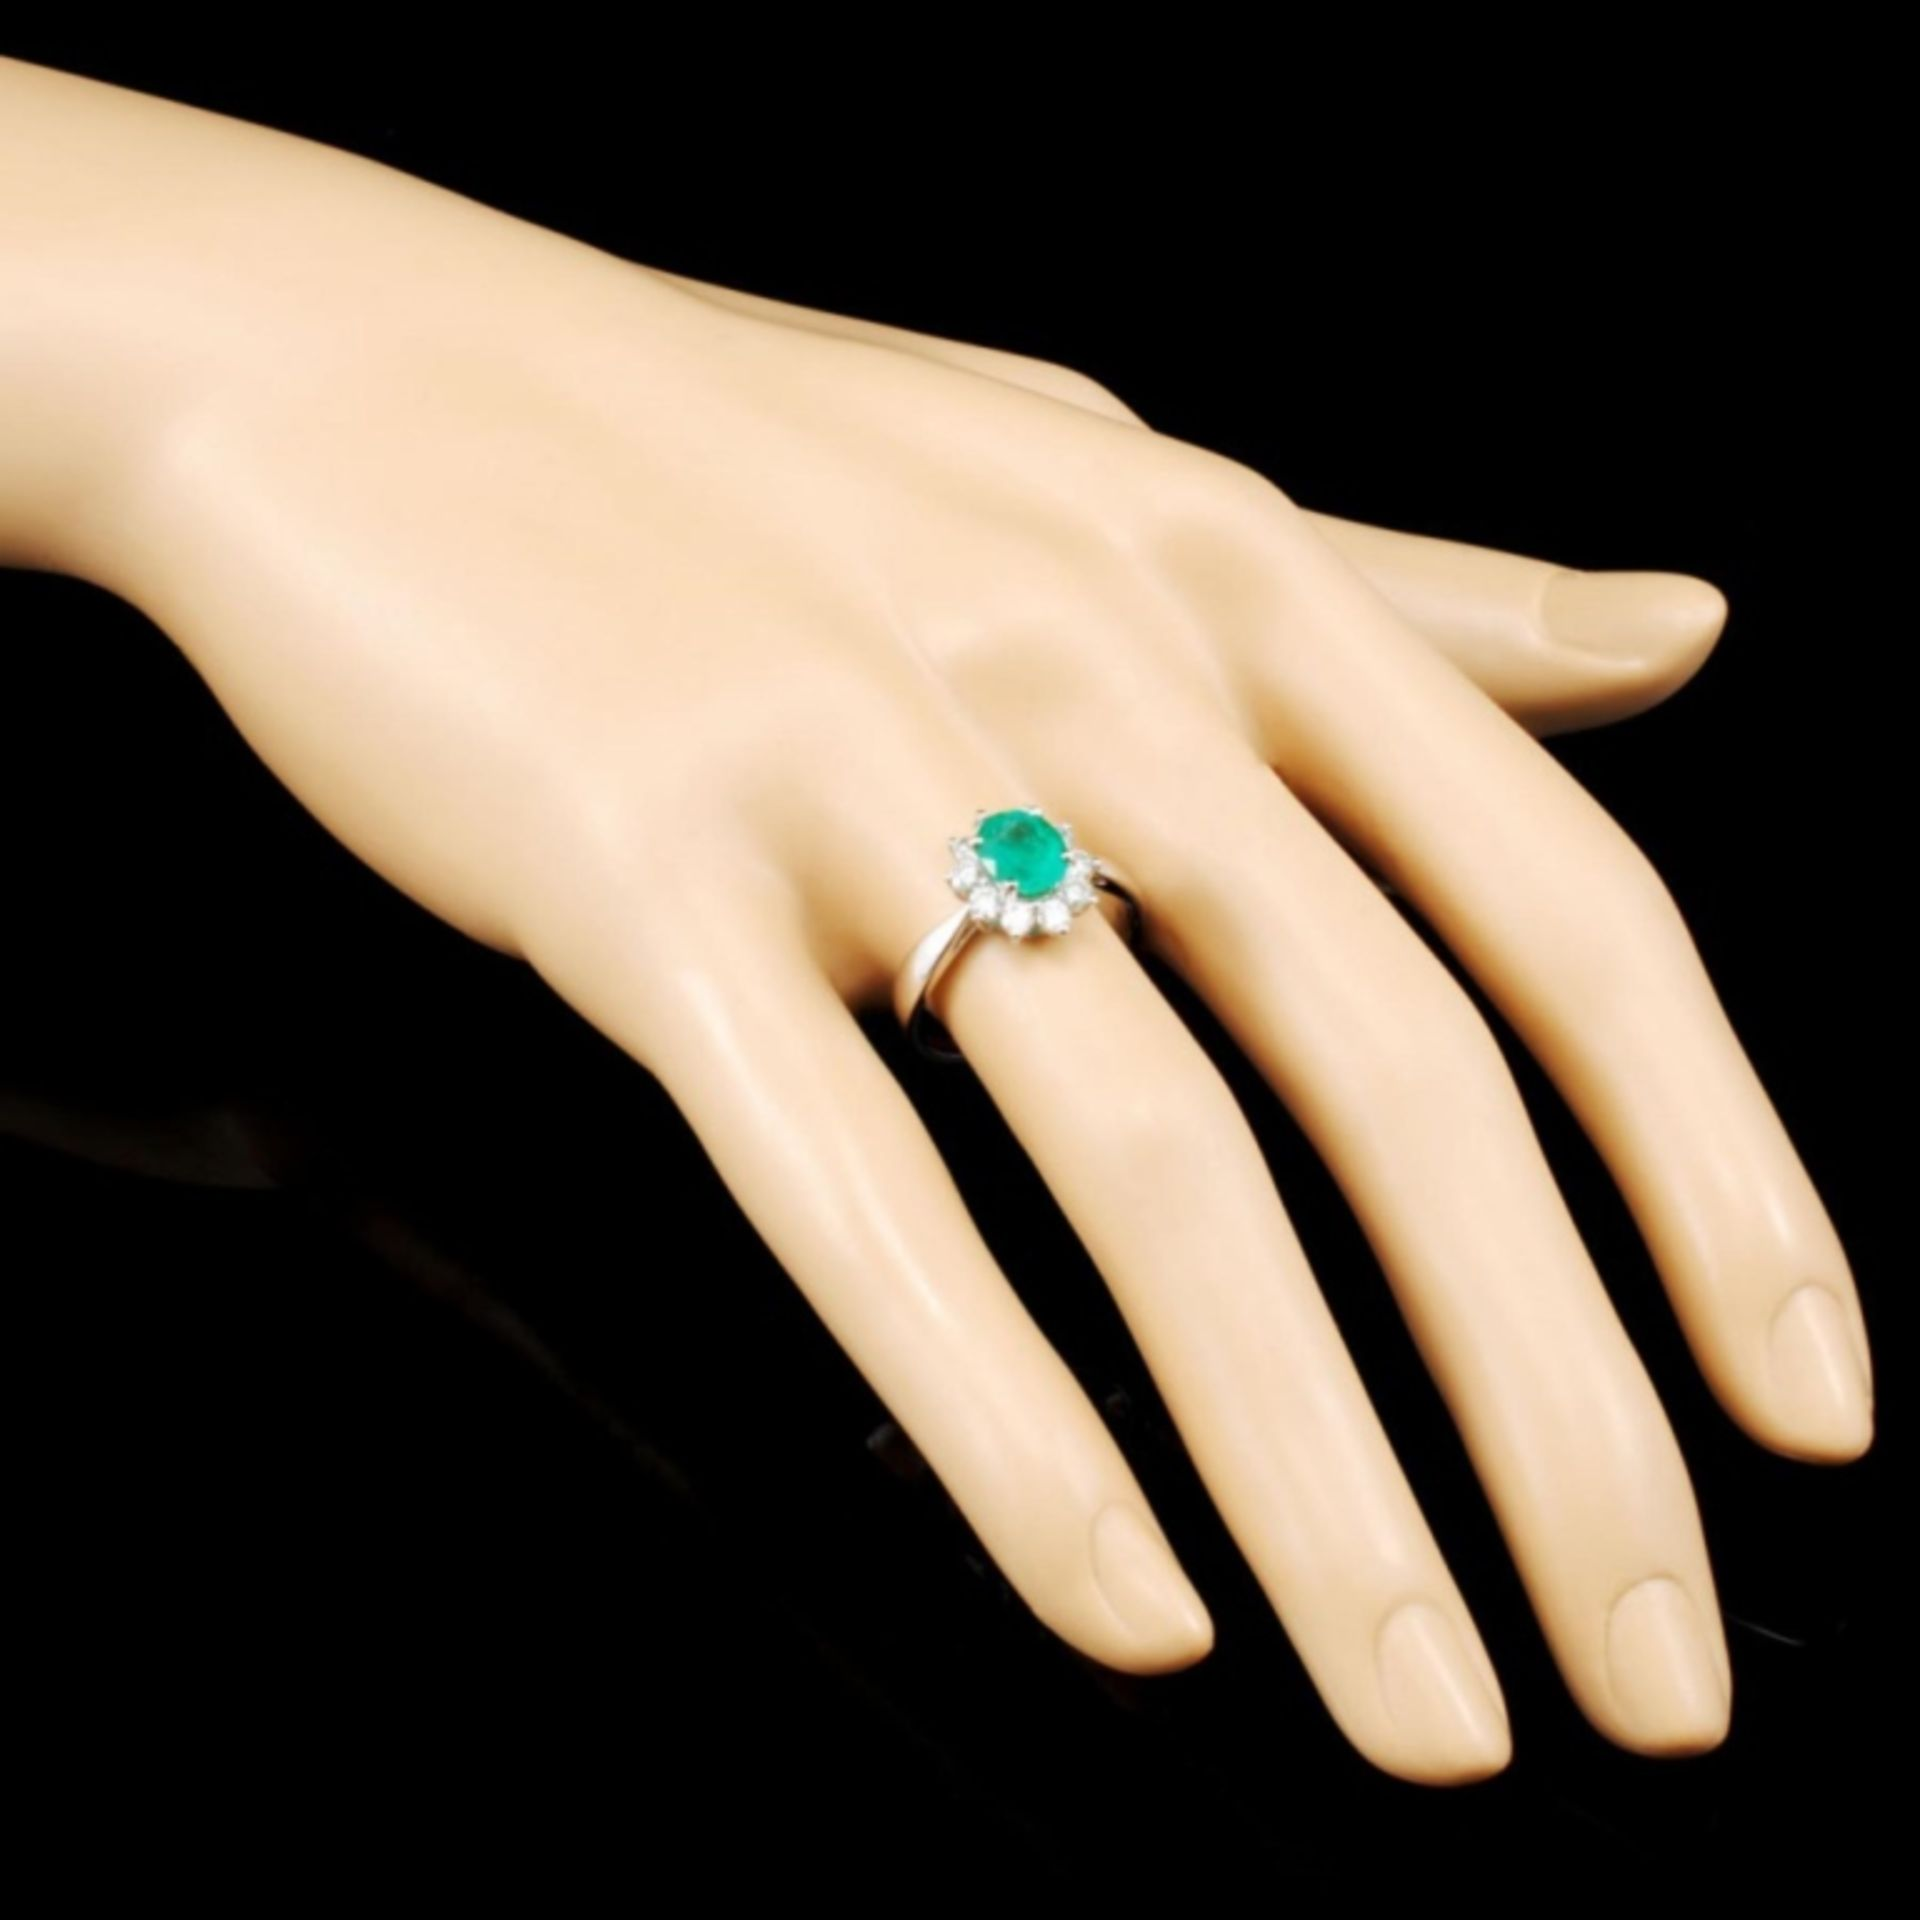 18K Gold 1.01ct Emerald & 0.57ctw Diamond Ring - Image 3 of 5